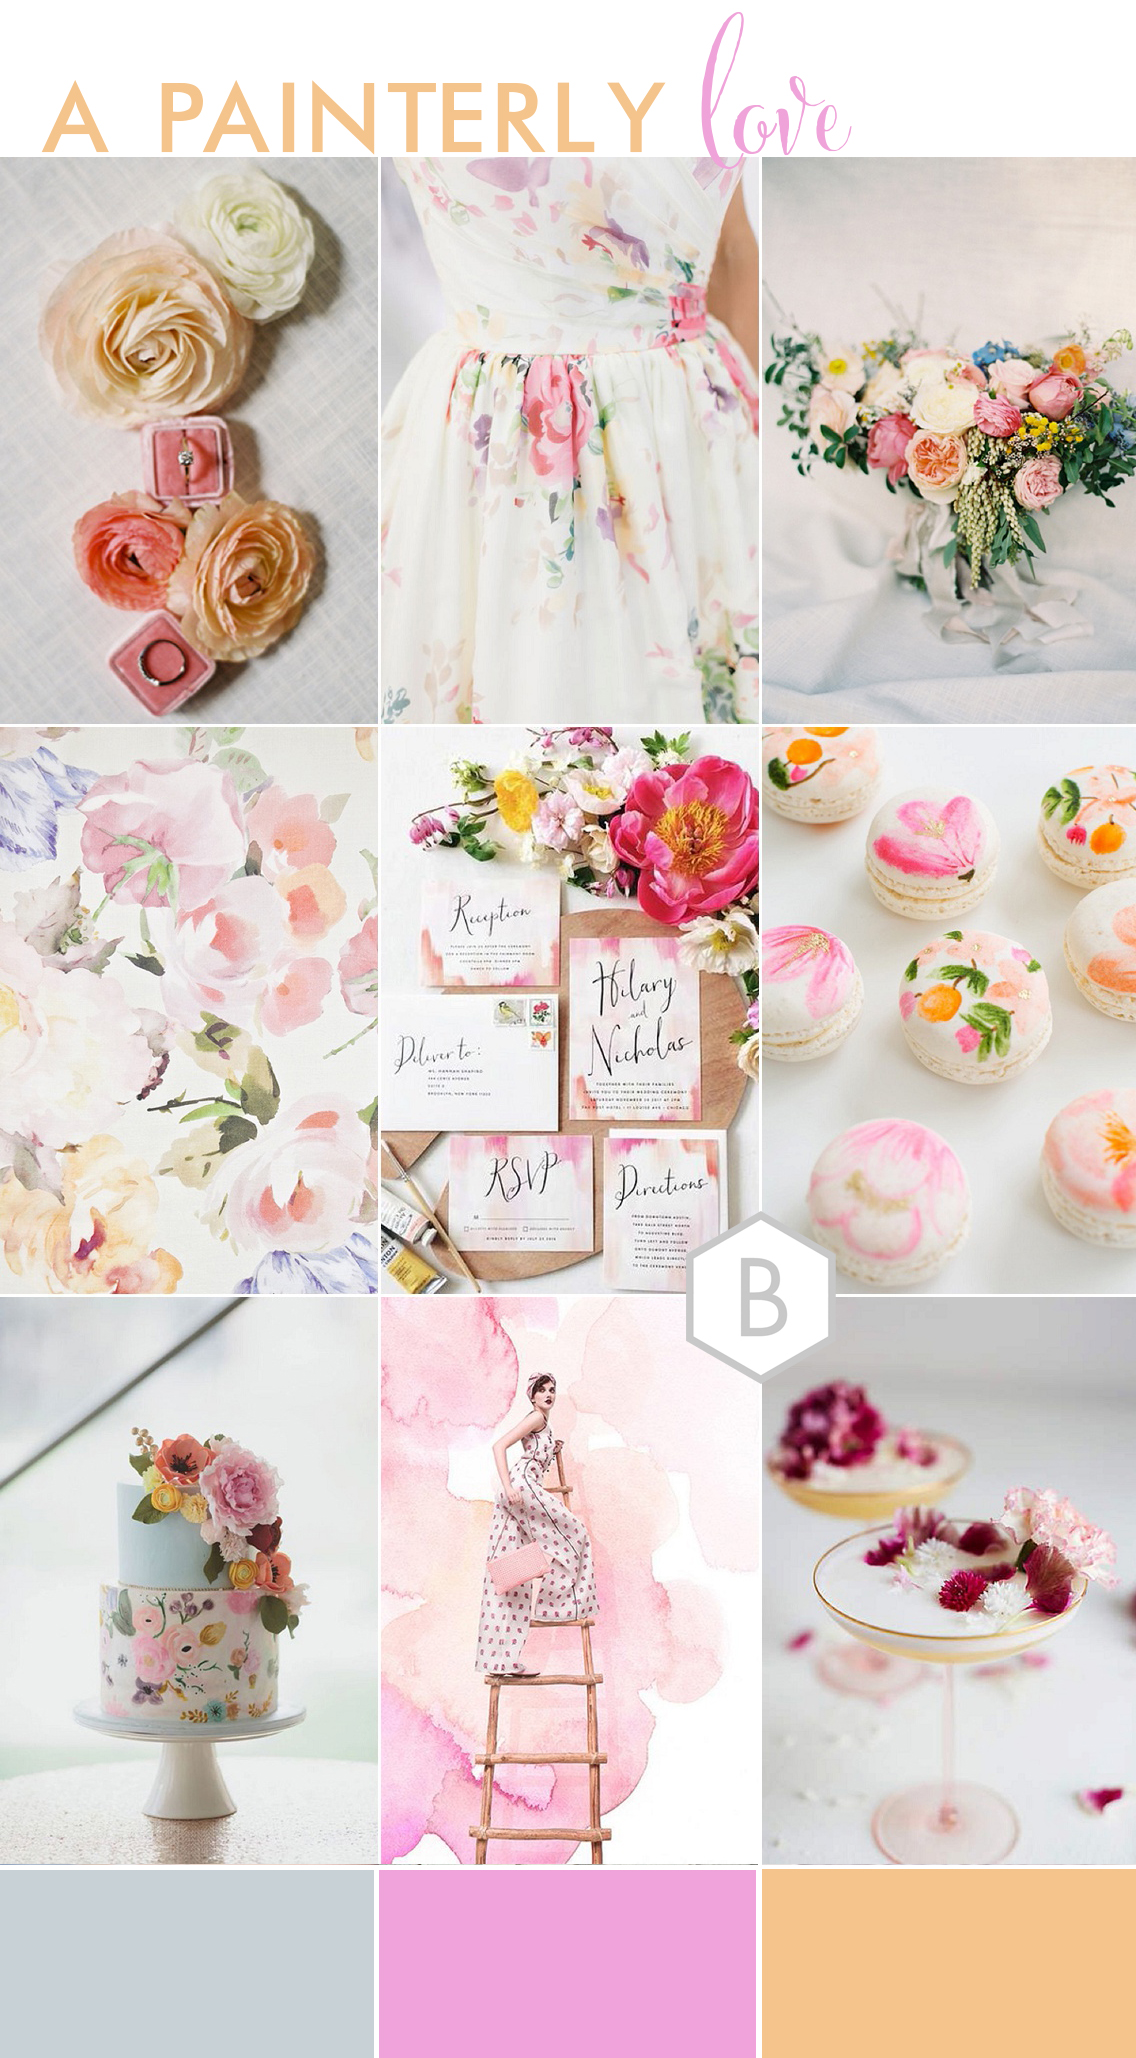 handpainted floral wedding inspiration